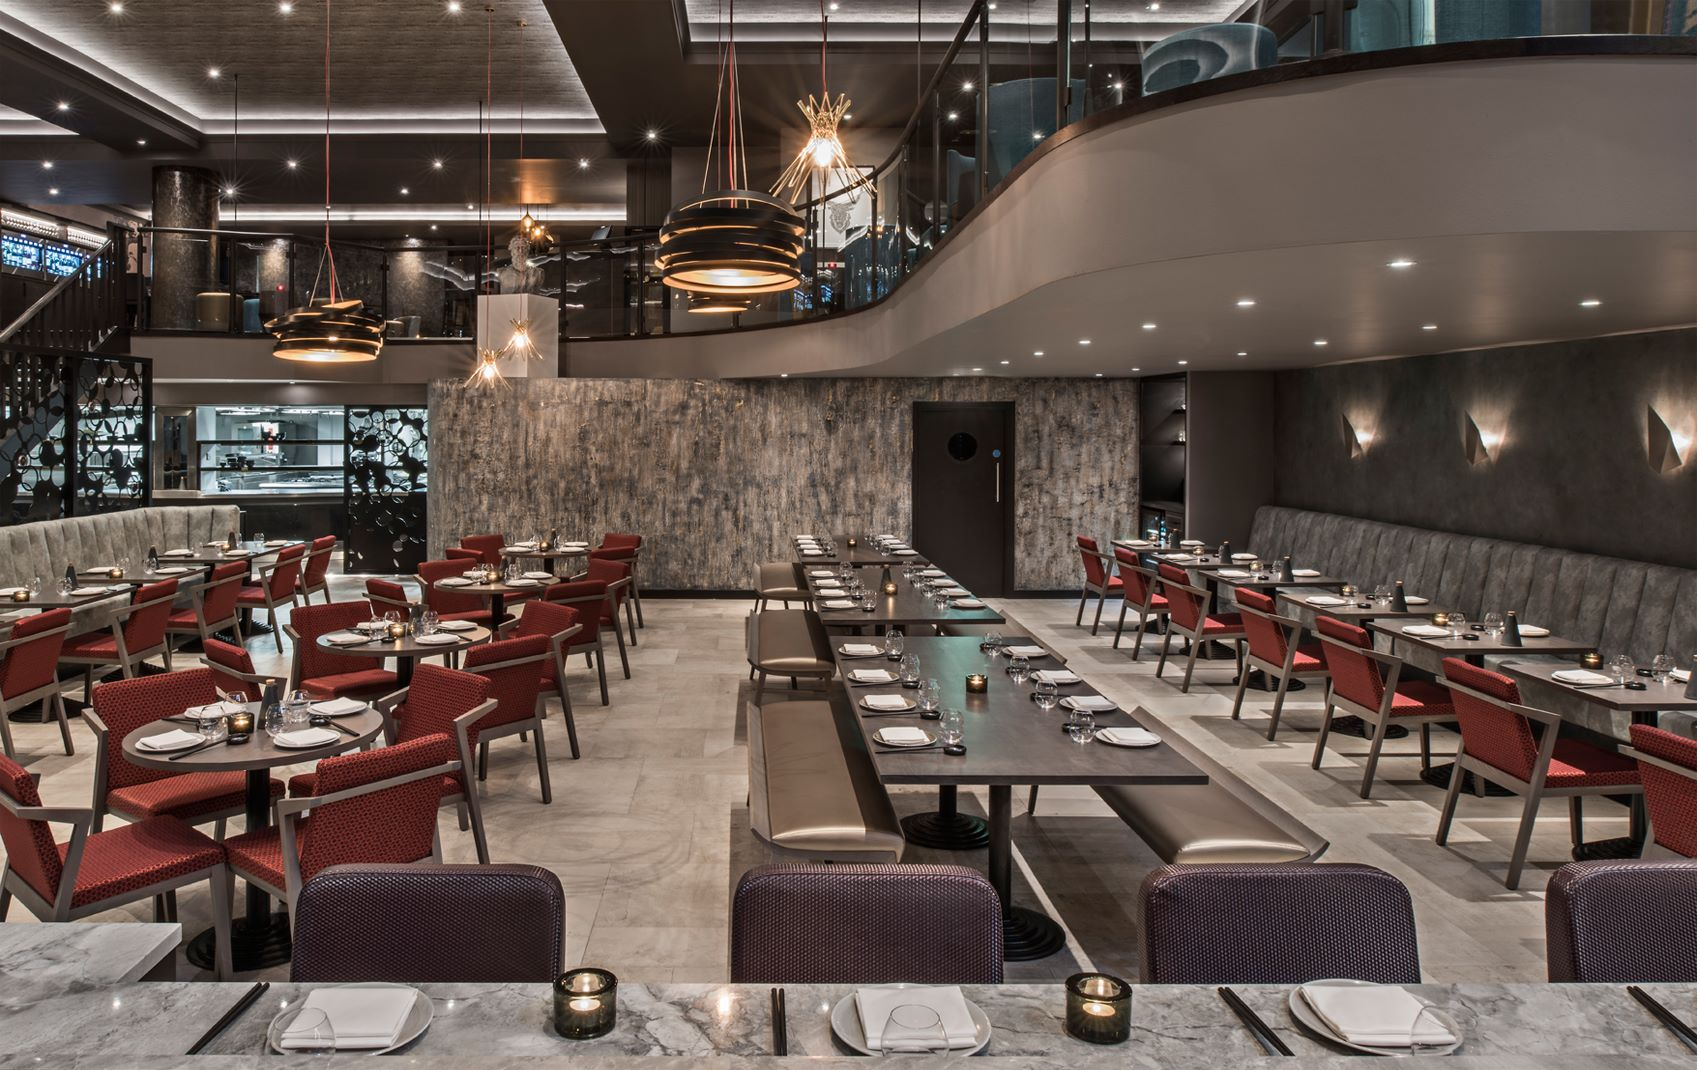 upscale interior design restaurant